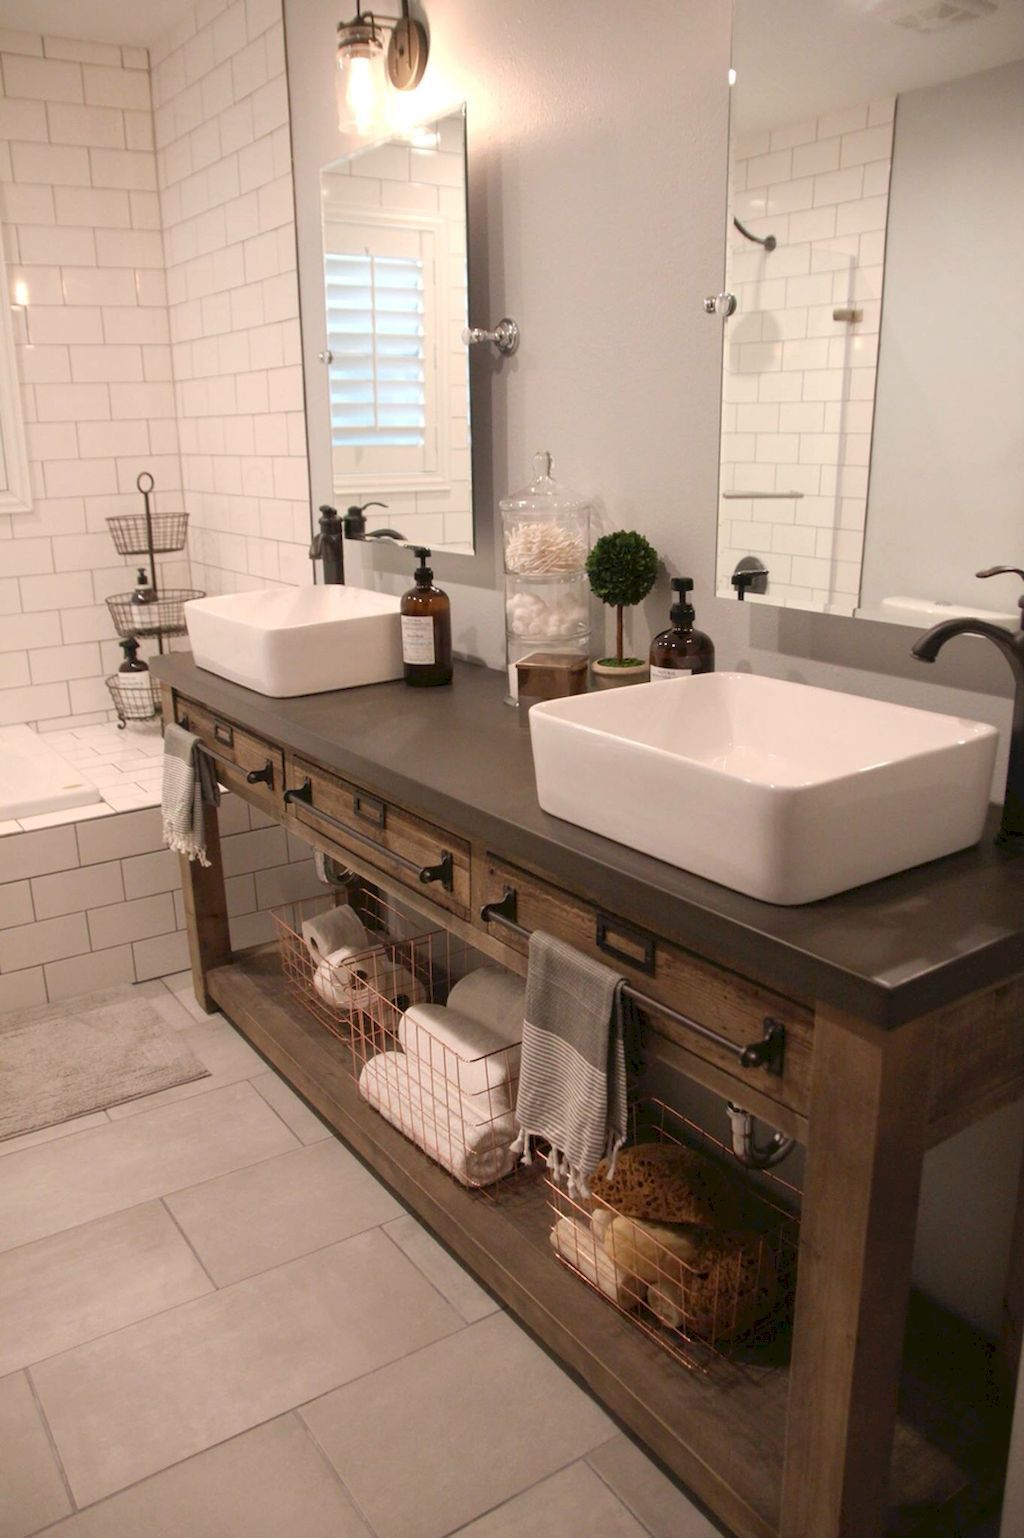 Bathroom Sink Ideas Small Space Bathroomsinkcabinets Small Double Sink Bathroom Van Basement Bathroom Remodeling Bathroom Vanity Remodel Bathroom Remodel Cost